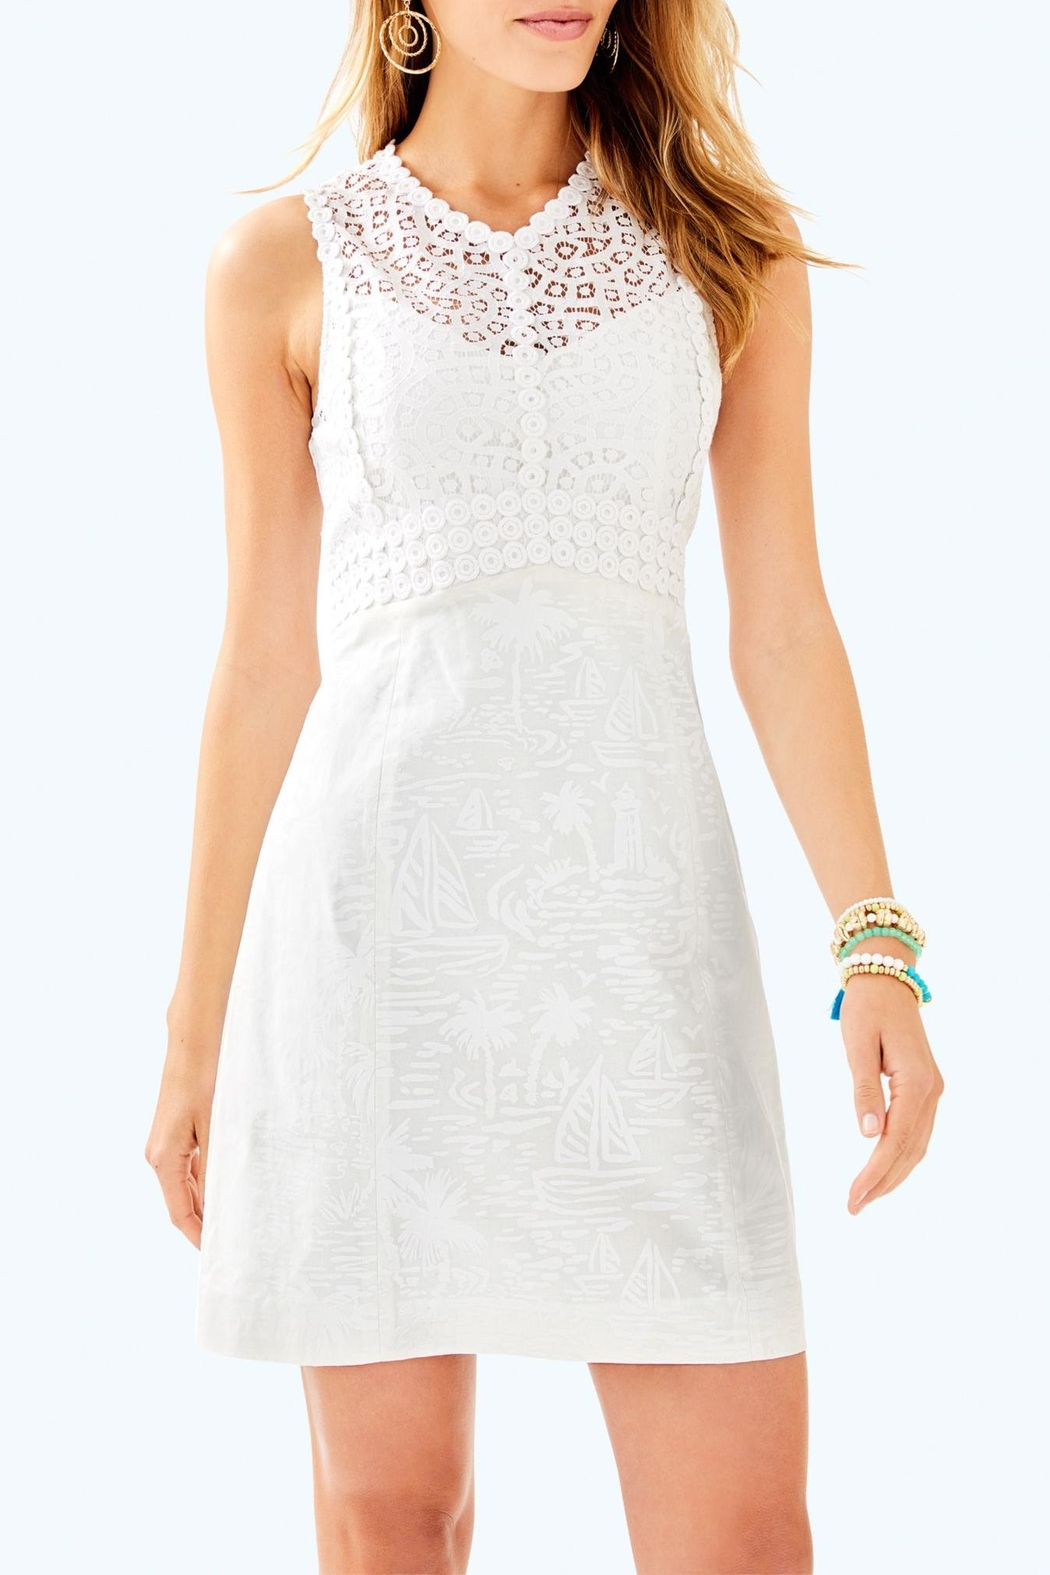 Lilly Pulitzer Leigh Stretch-Shift Dress - Main Image